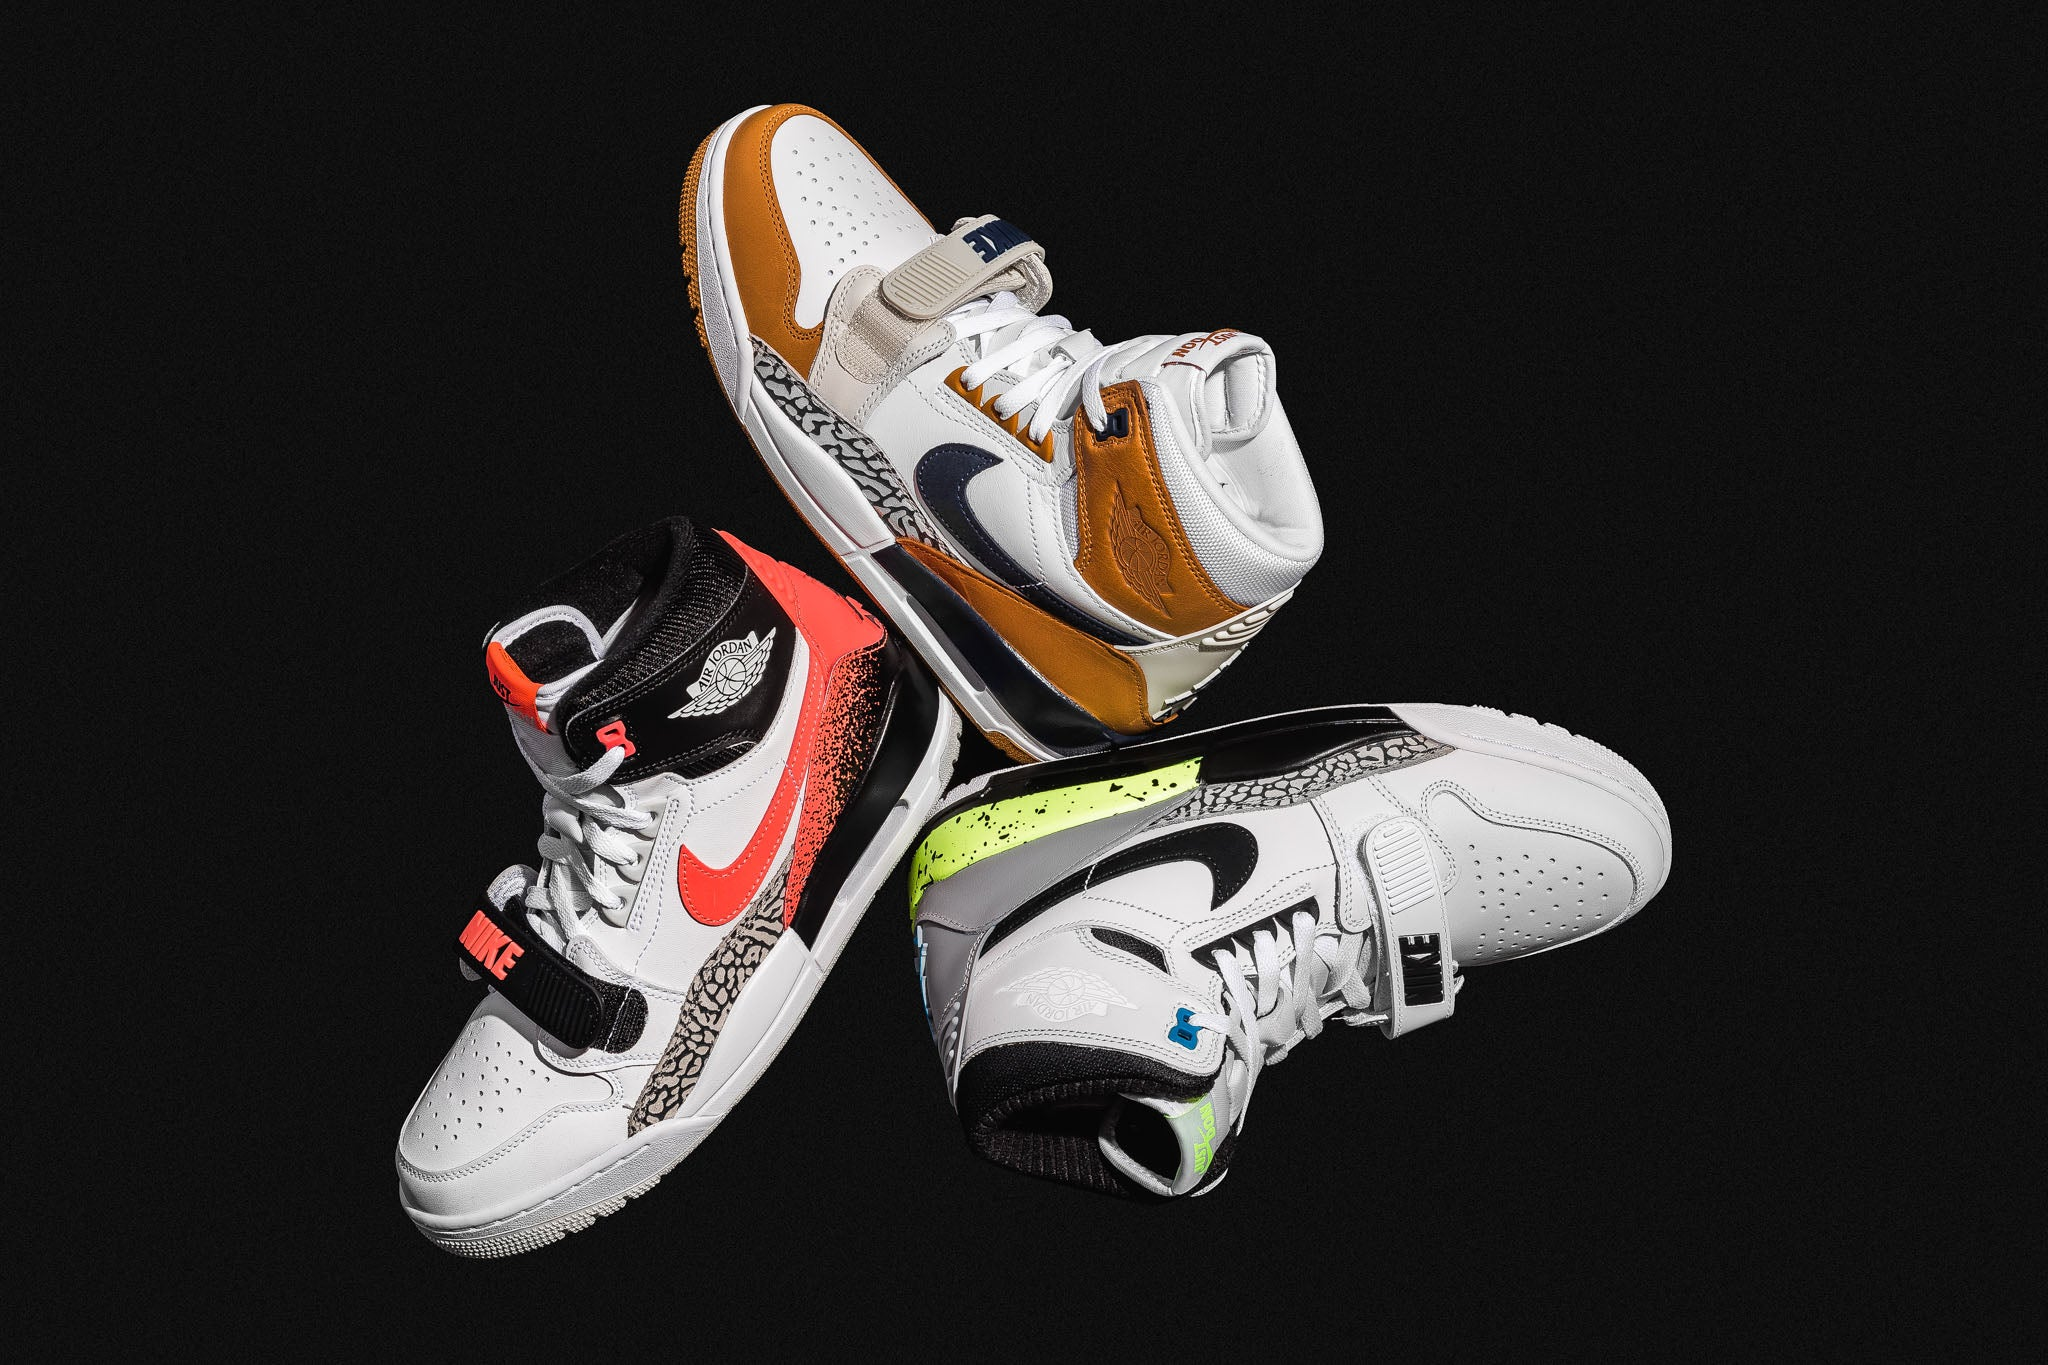 bfaf3a16d76d Don C s Air Jordan Legacy 312 NRG draws inspiration from a few iconic nike  silhouettes from the 90s with borrowed designed features from the Air Jordan  1